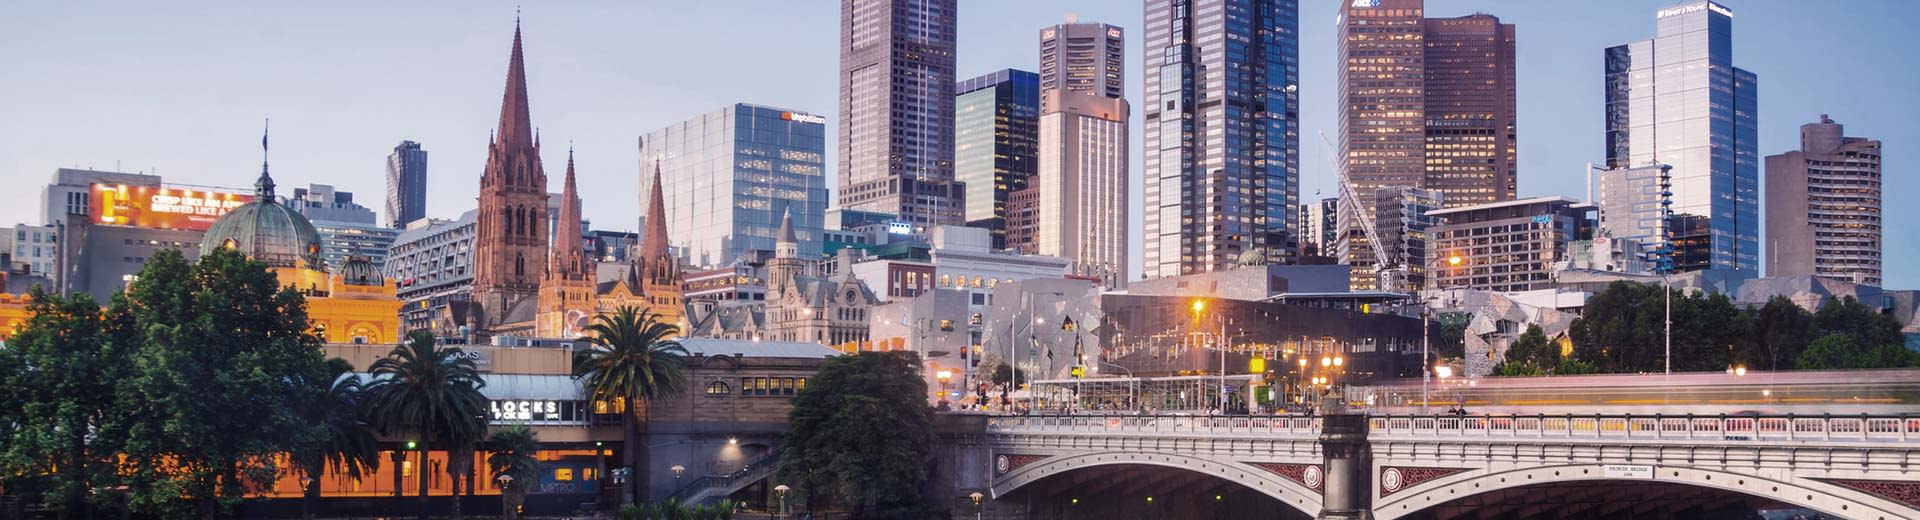 Skyscrapers and bridges of Melbourne in the half-light of dusk